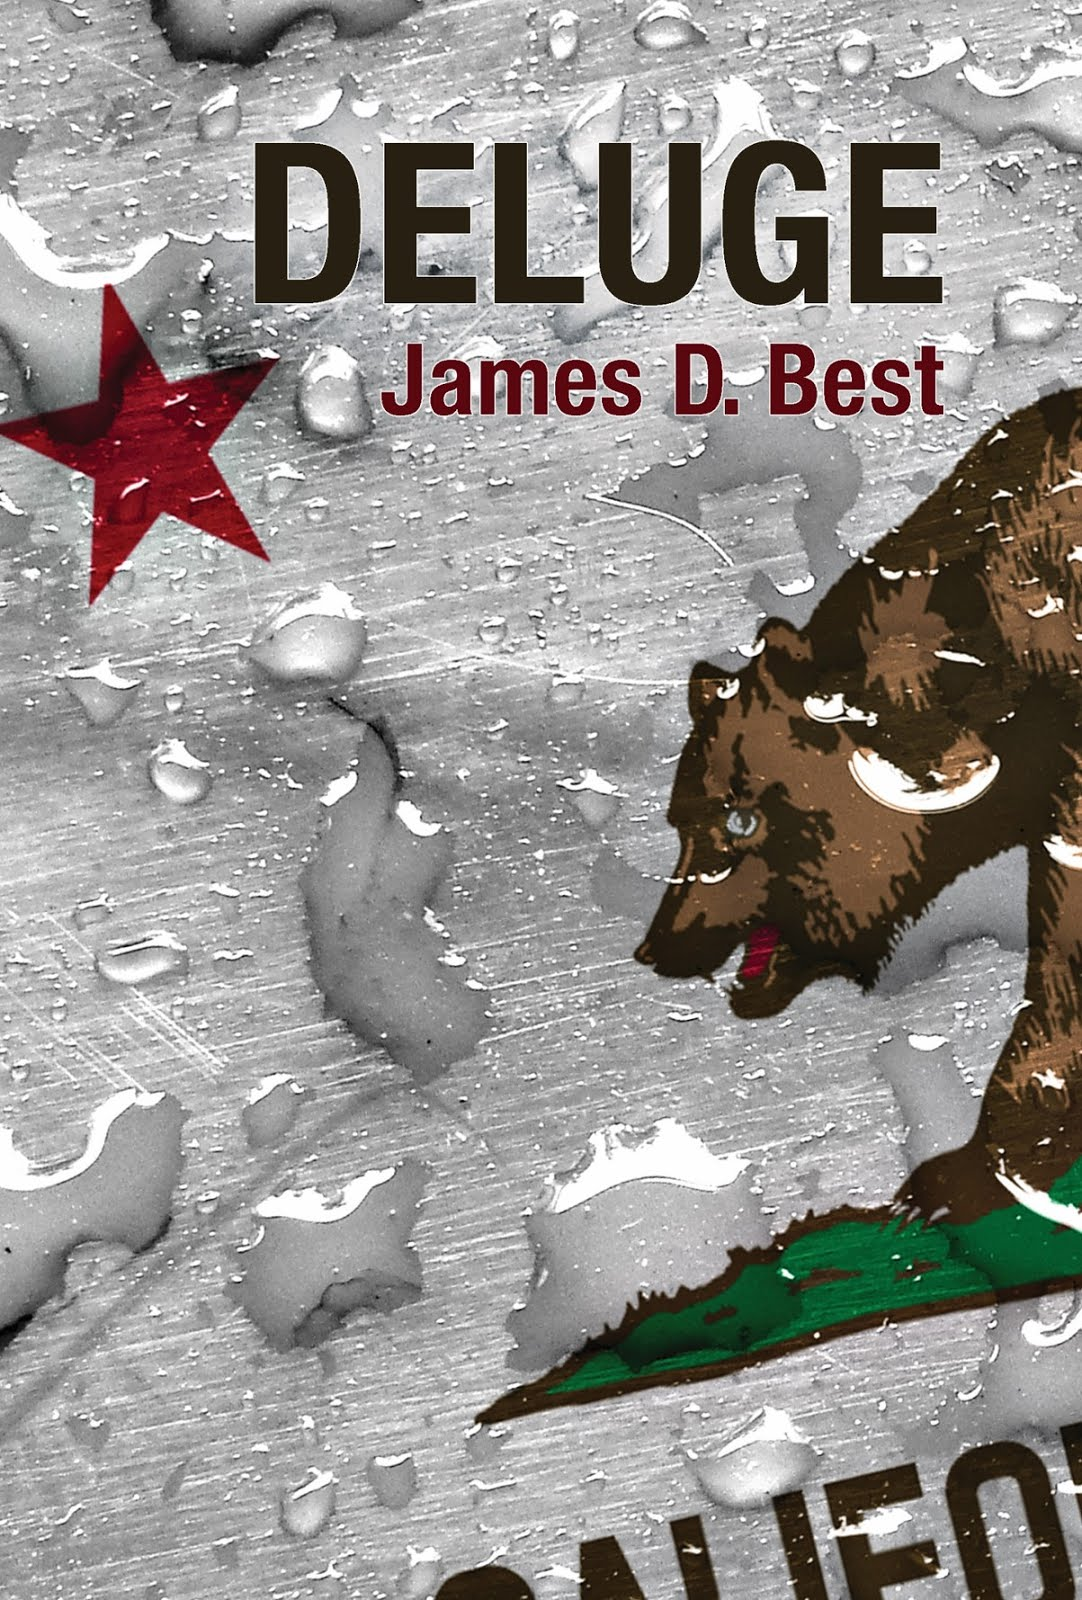 Latest James D. Best Book